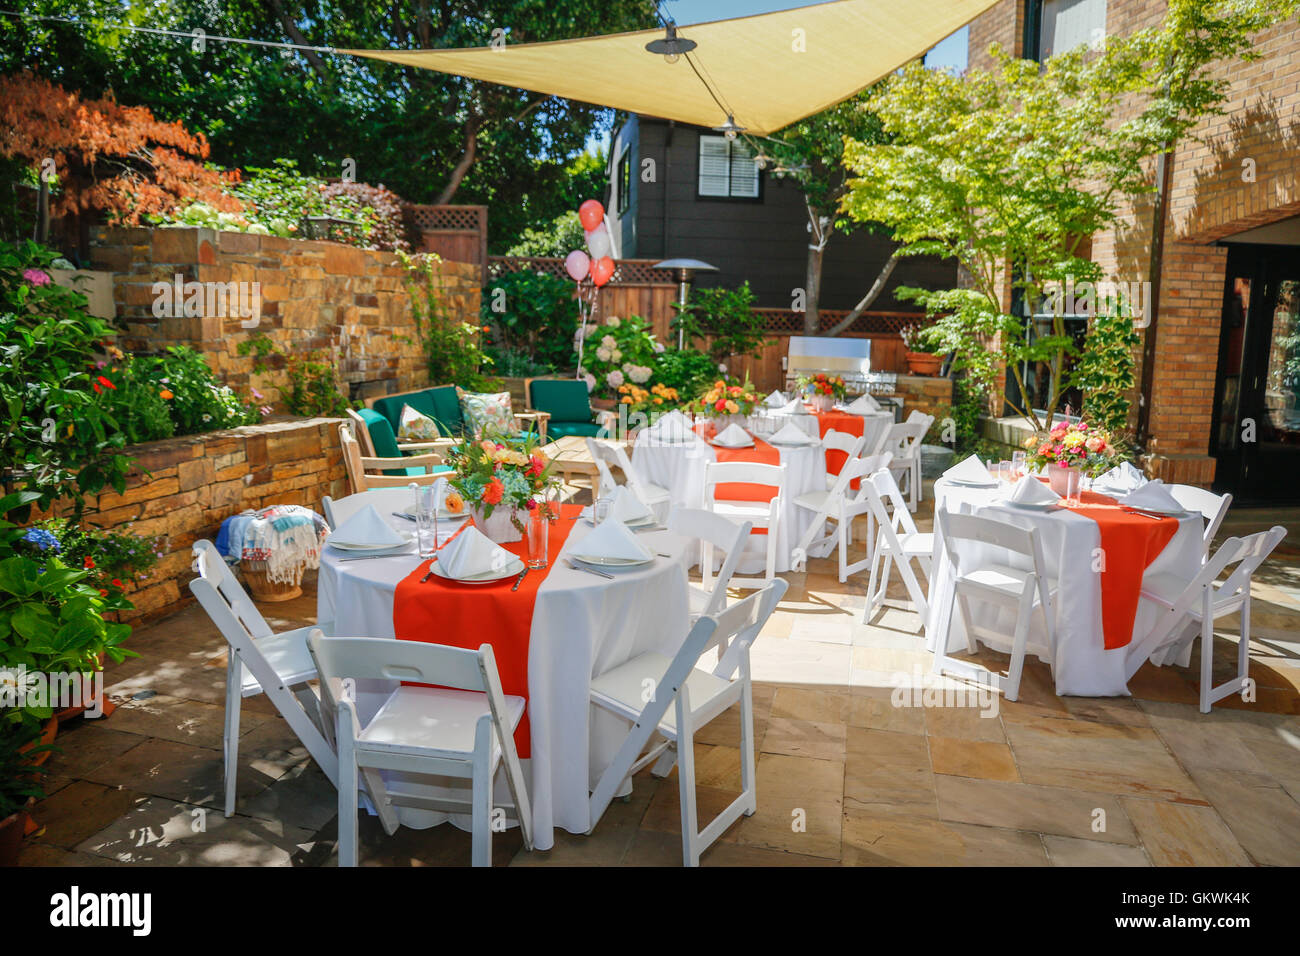 Outdoor Party Table Setting Stock Photo Royalty Free